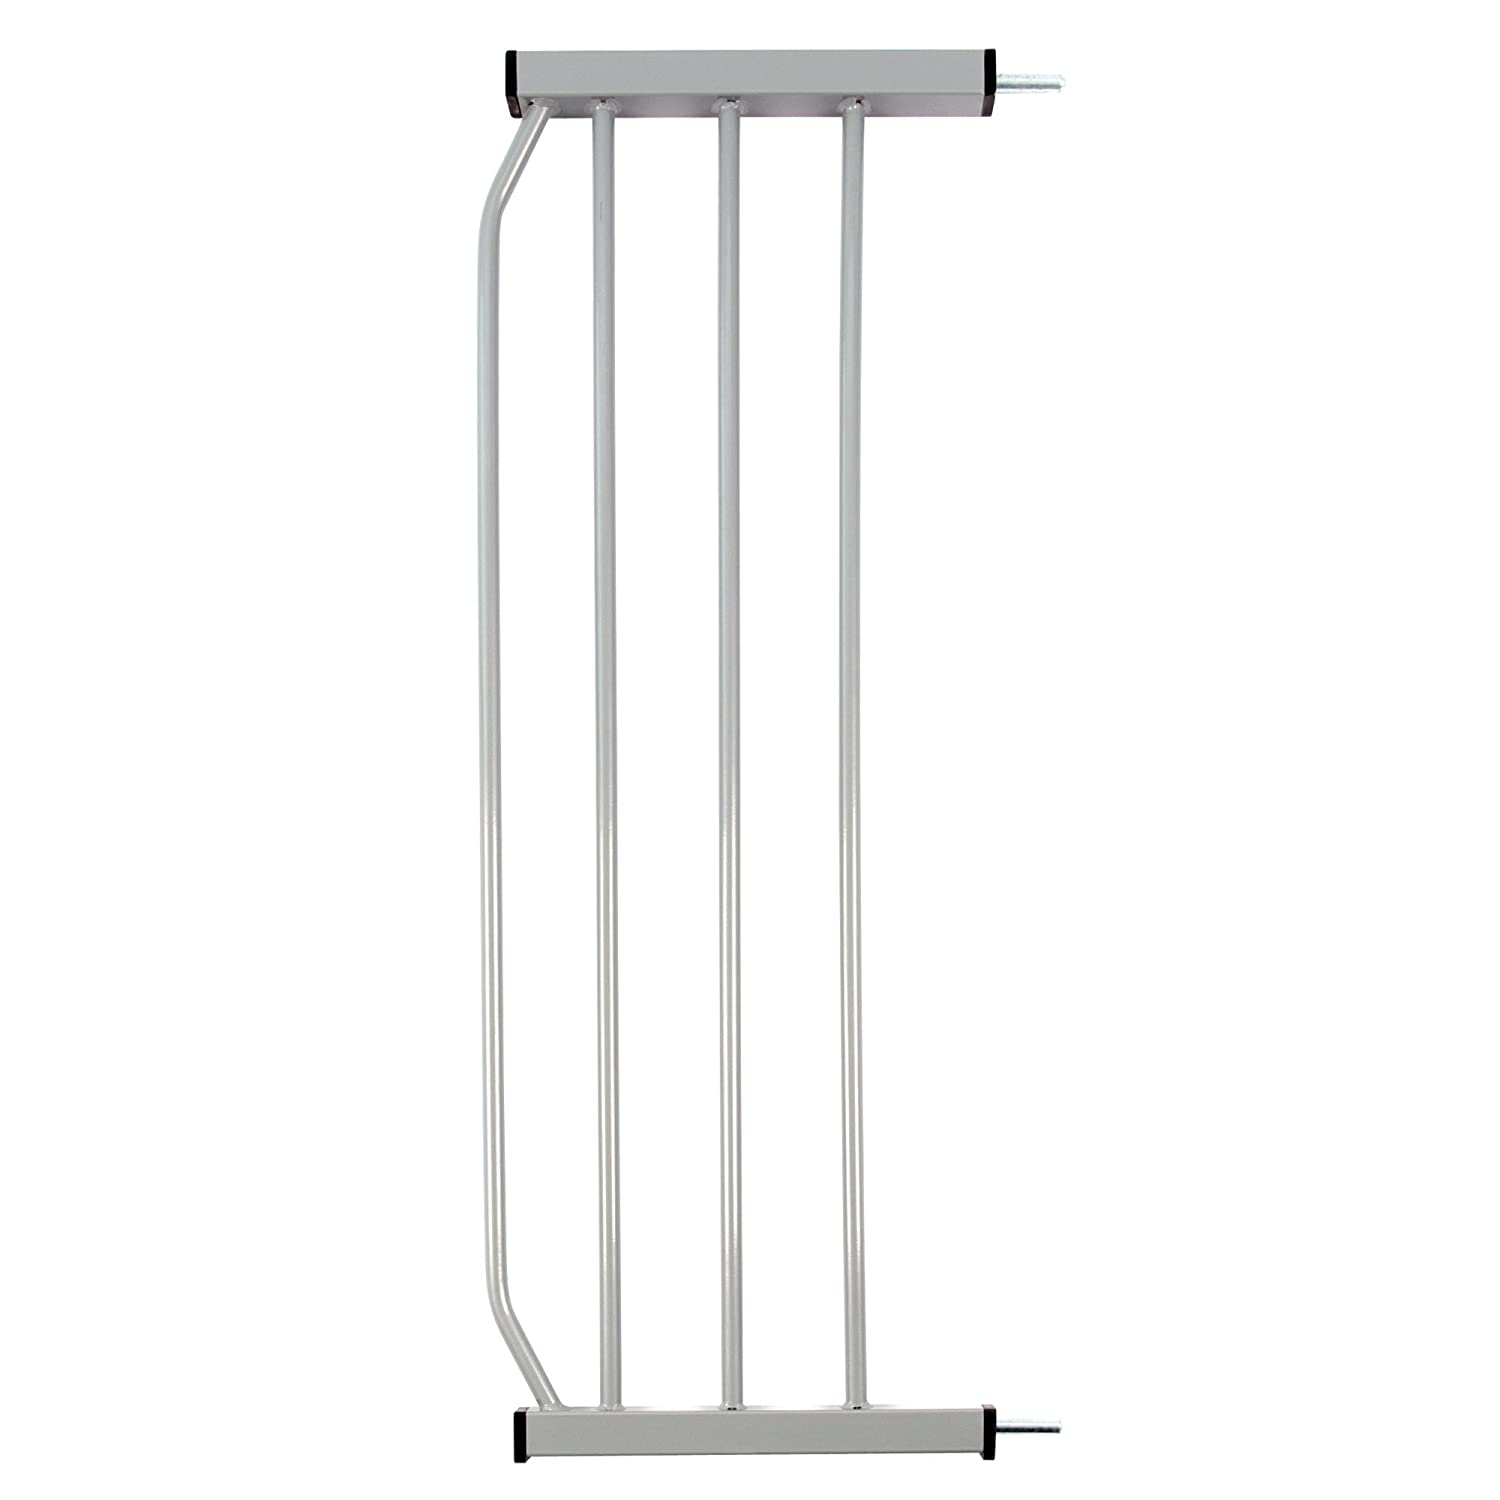 Extension Metal P/Valla Oscar- Ext. 26 Cm H3 BABY SAFETY PRODUCTS BV W094